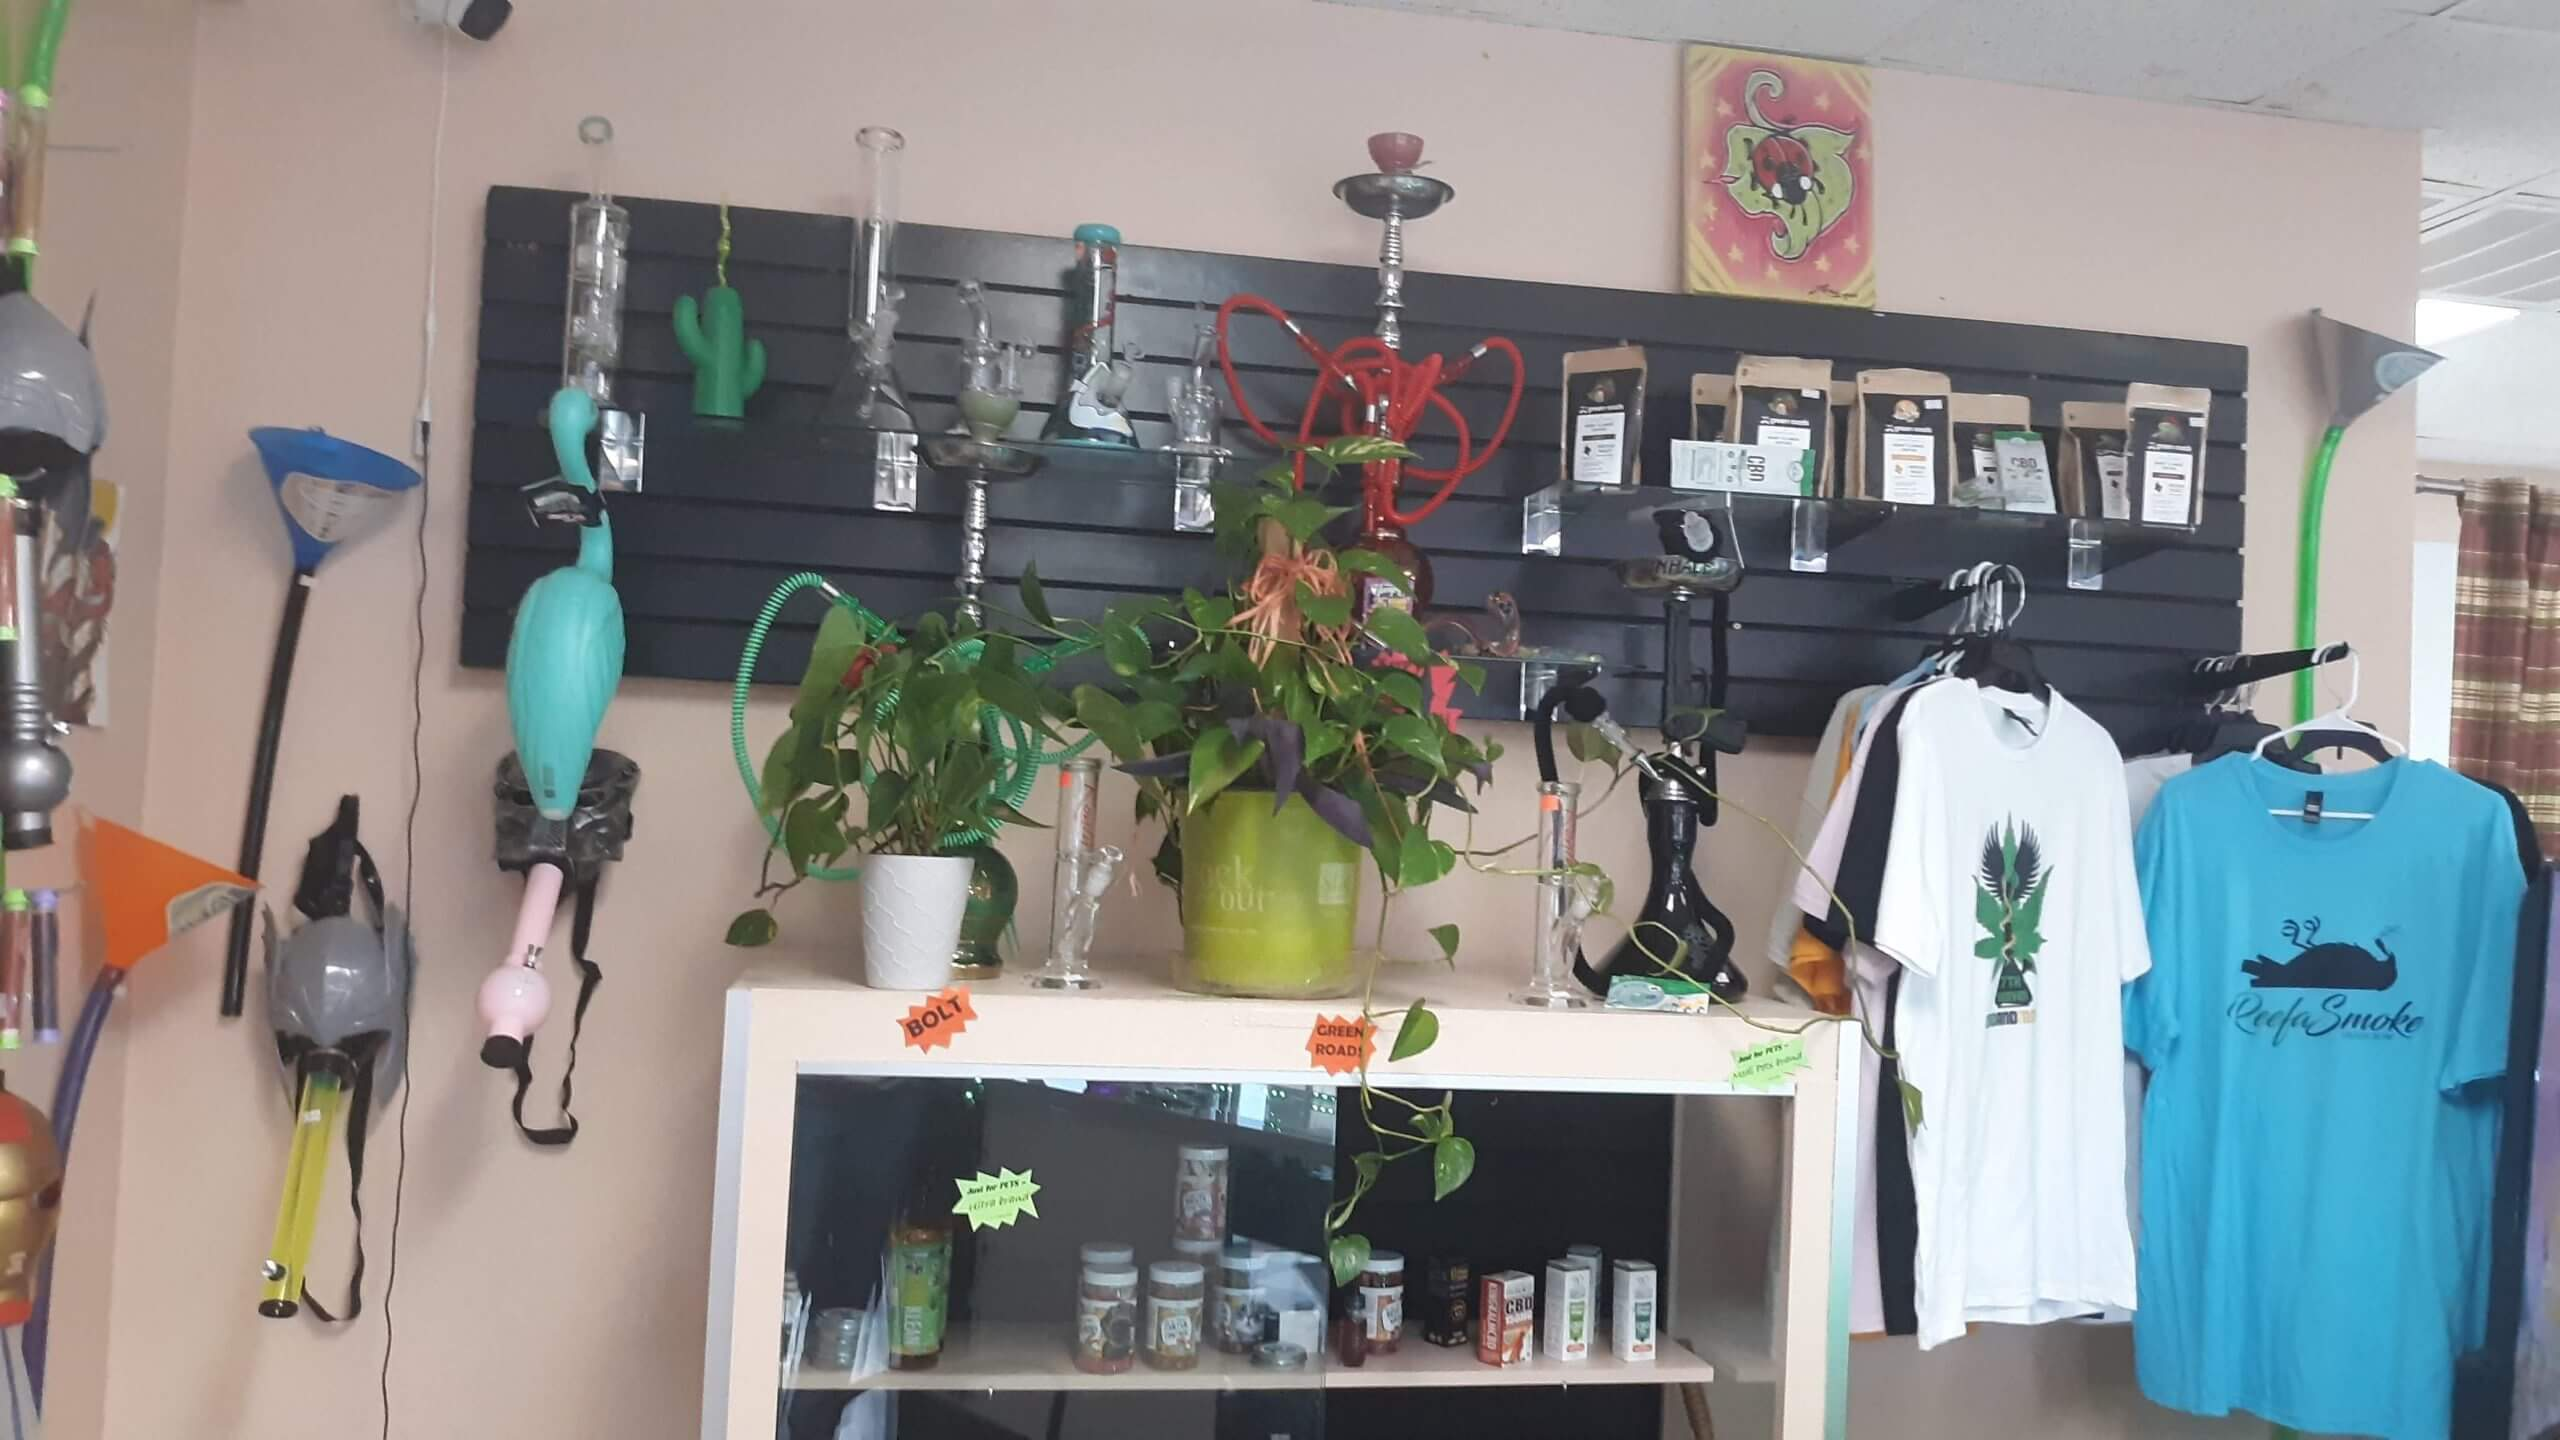 CBD Products, Herbs, bath Booms, Incense and edibles For Sales In Our Store In Killeen, TX (70)